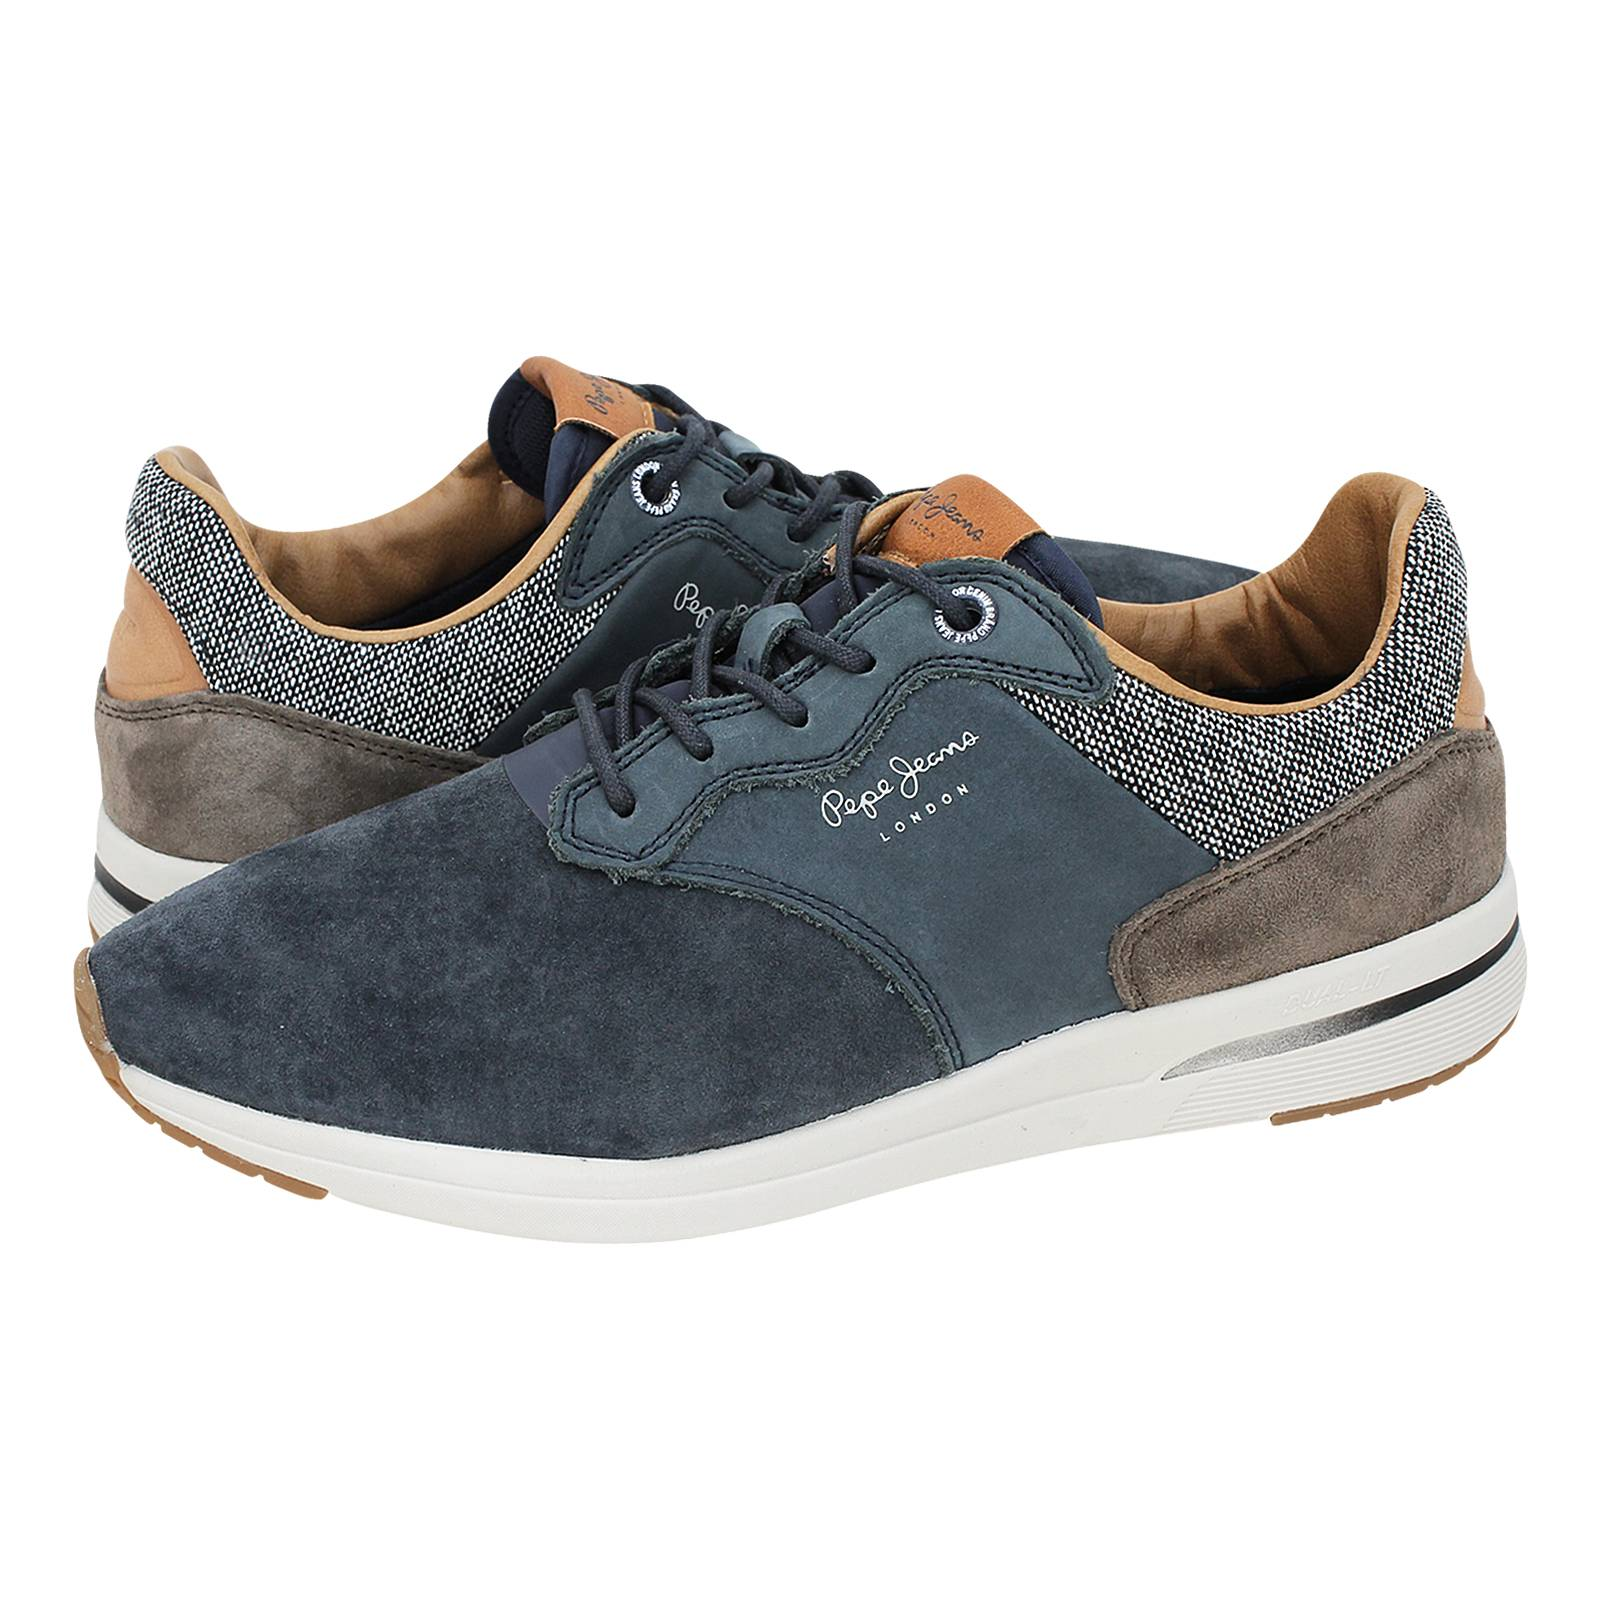 81ff5865601 Jayker - Pepe Jeans Men s casual shoes made of suede